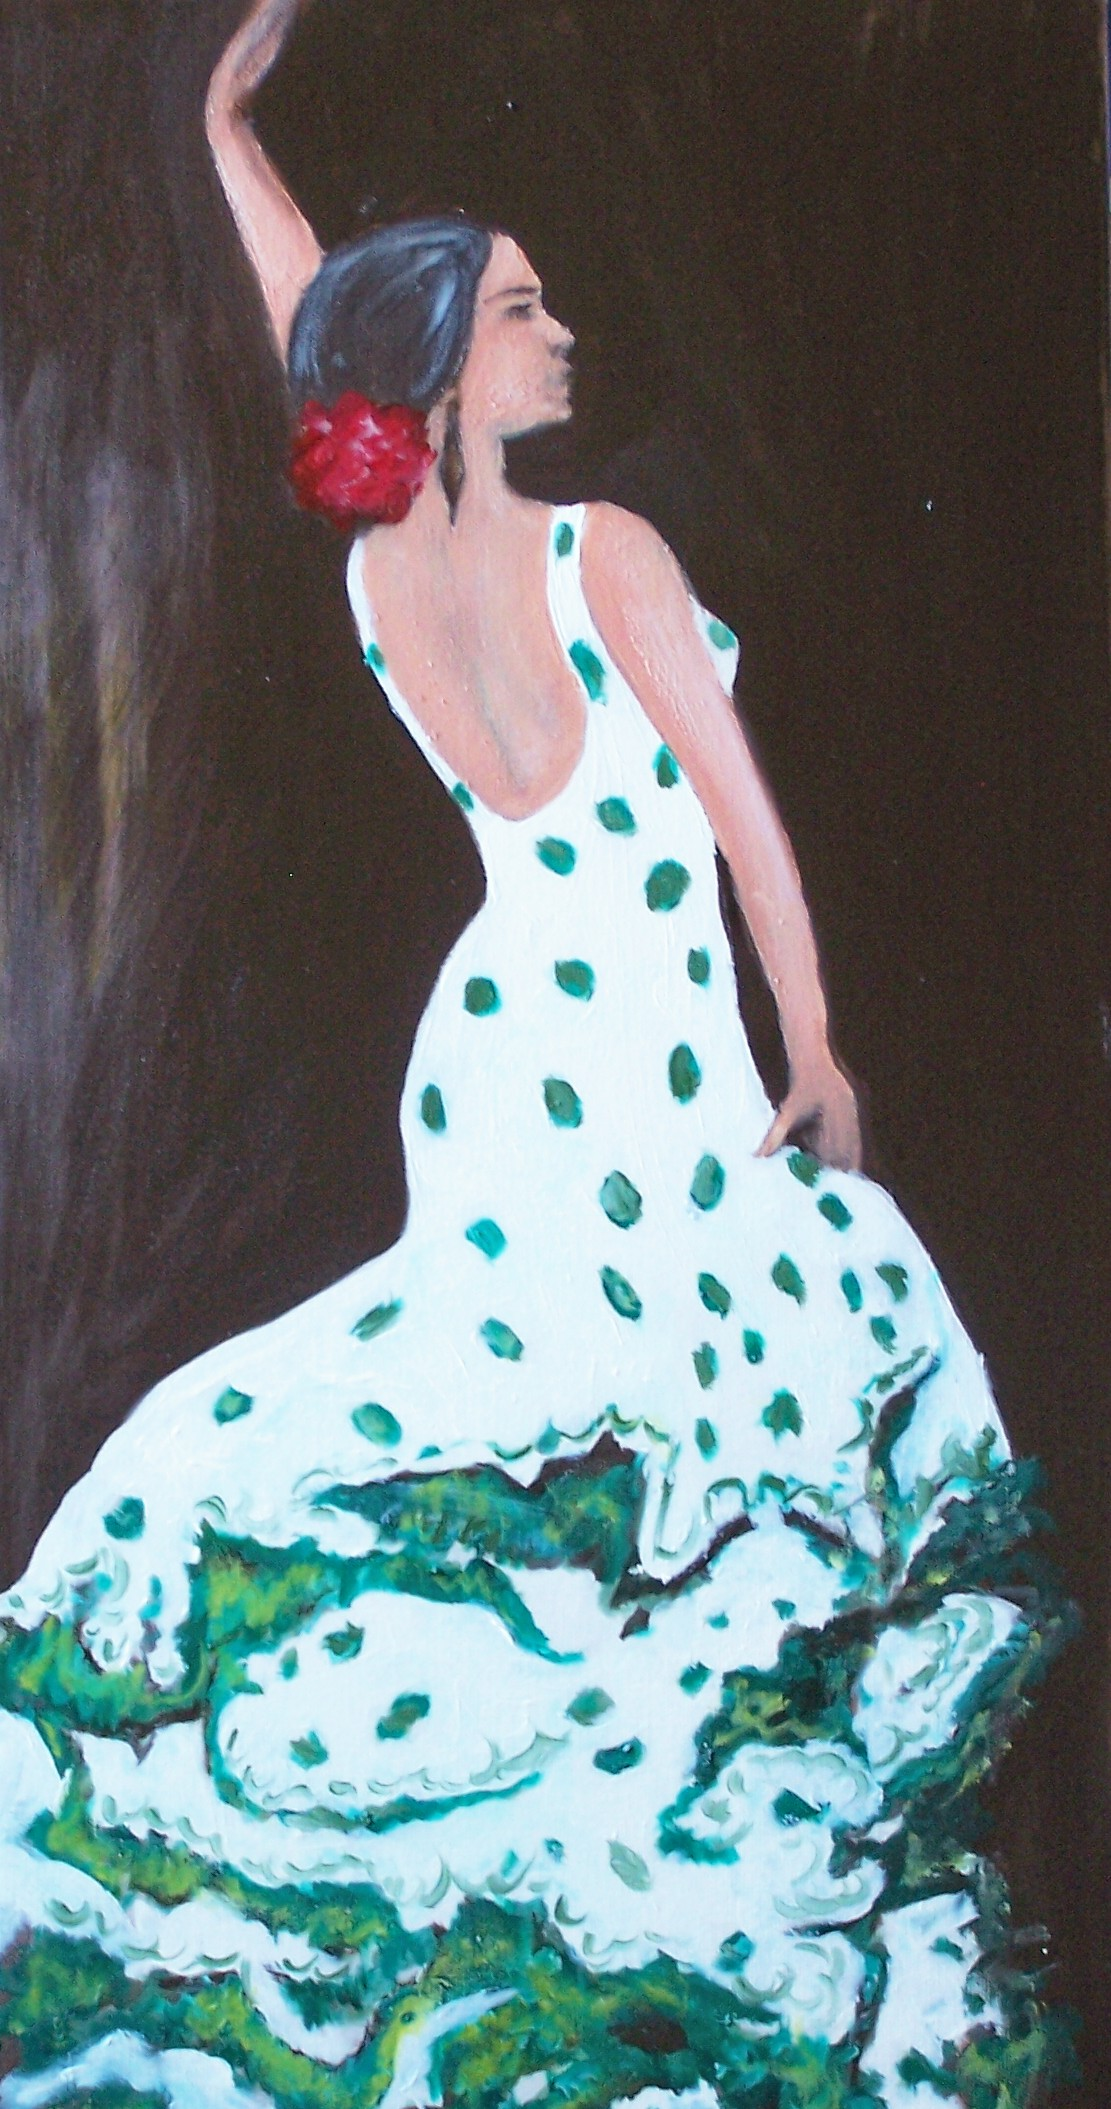 flamenco dancer, 12x24, 2008